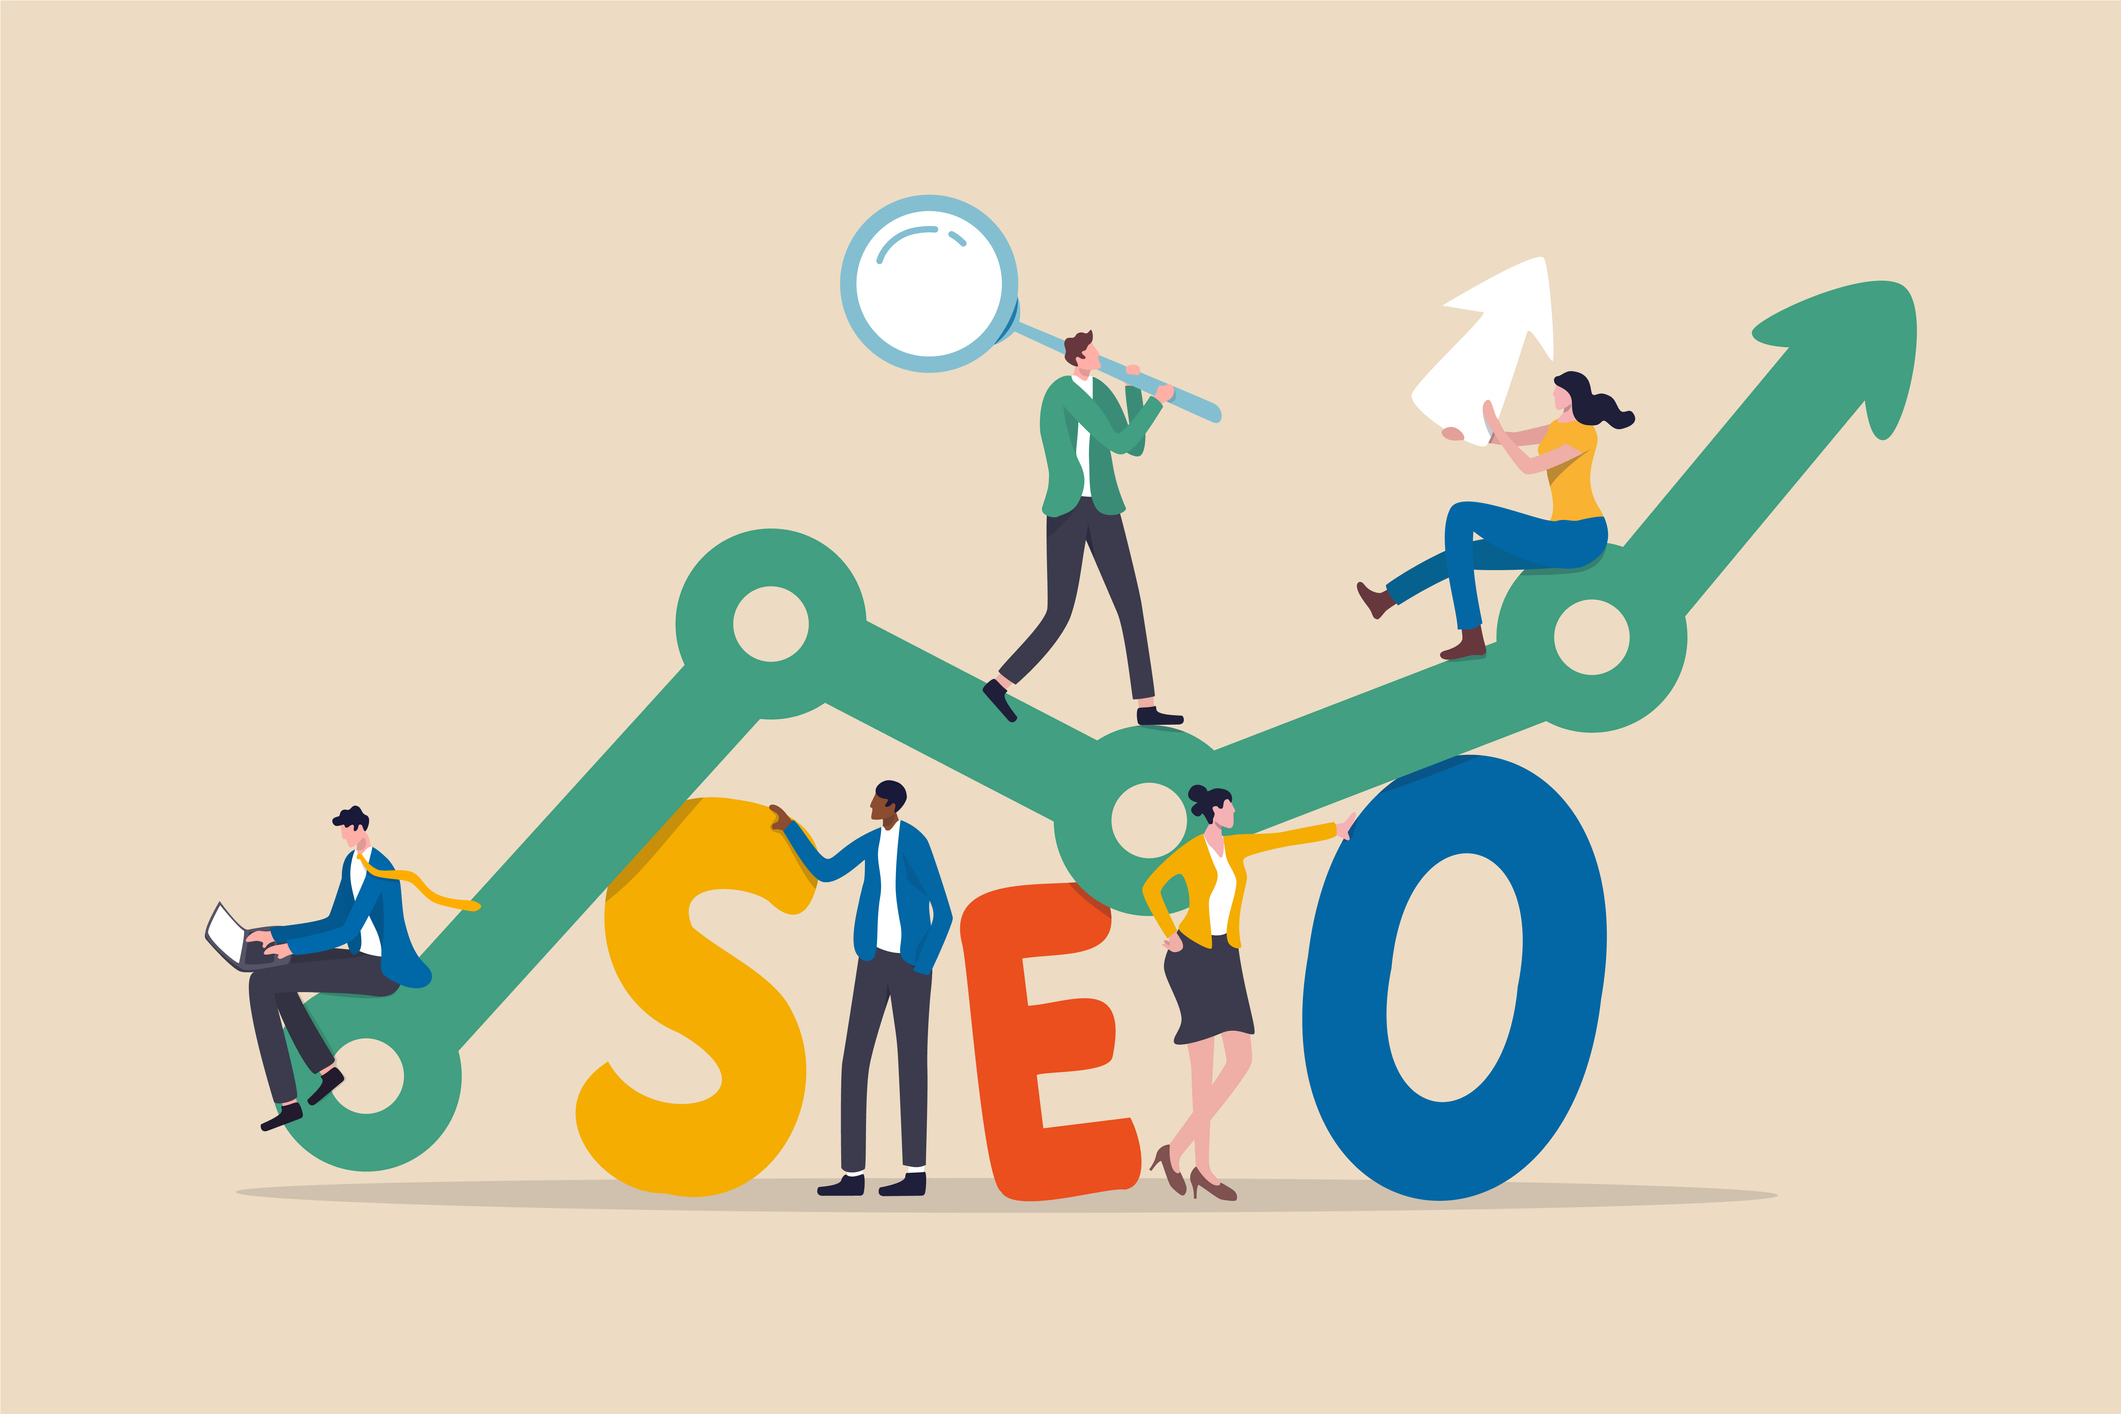 """Text reads """"SEO"""" with people standing on an upward arrow."""